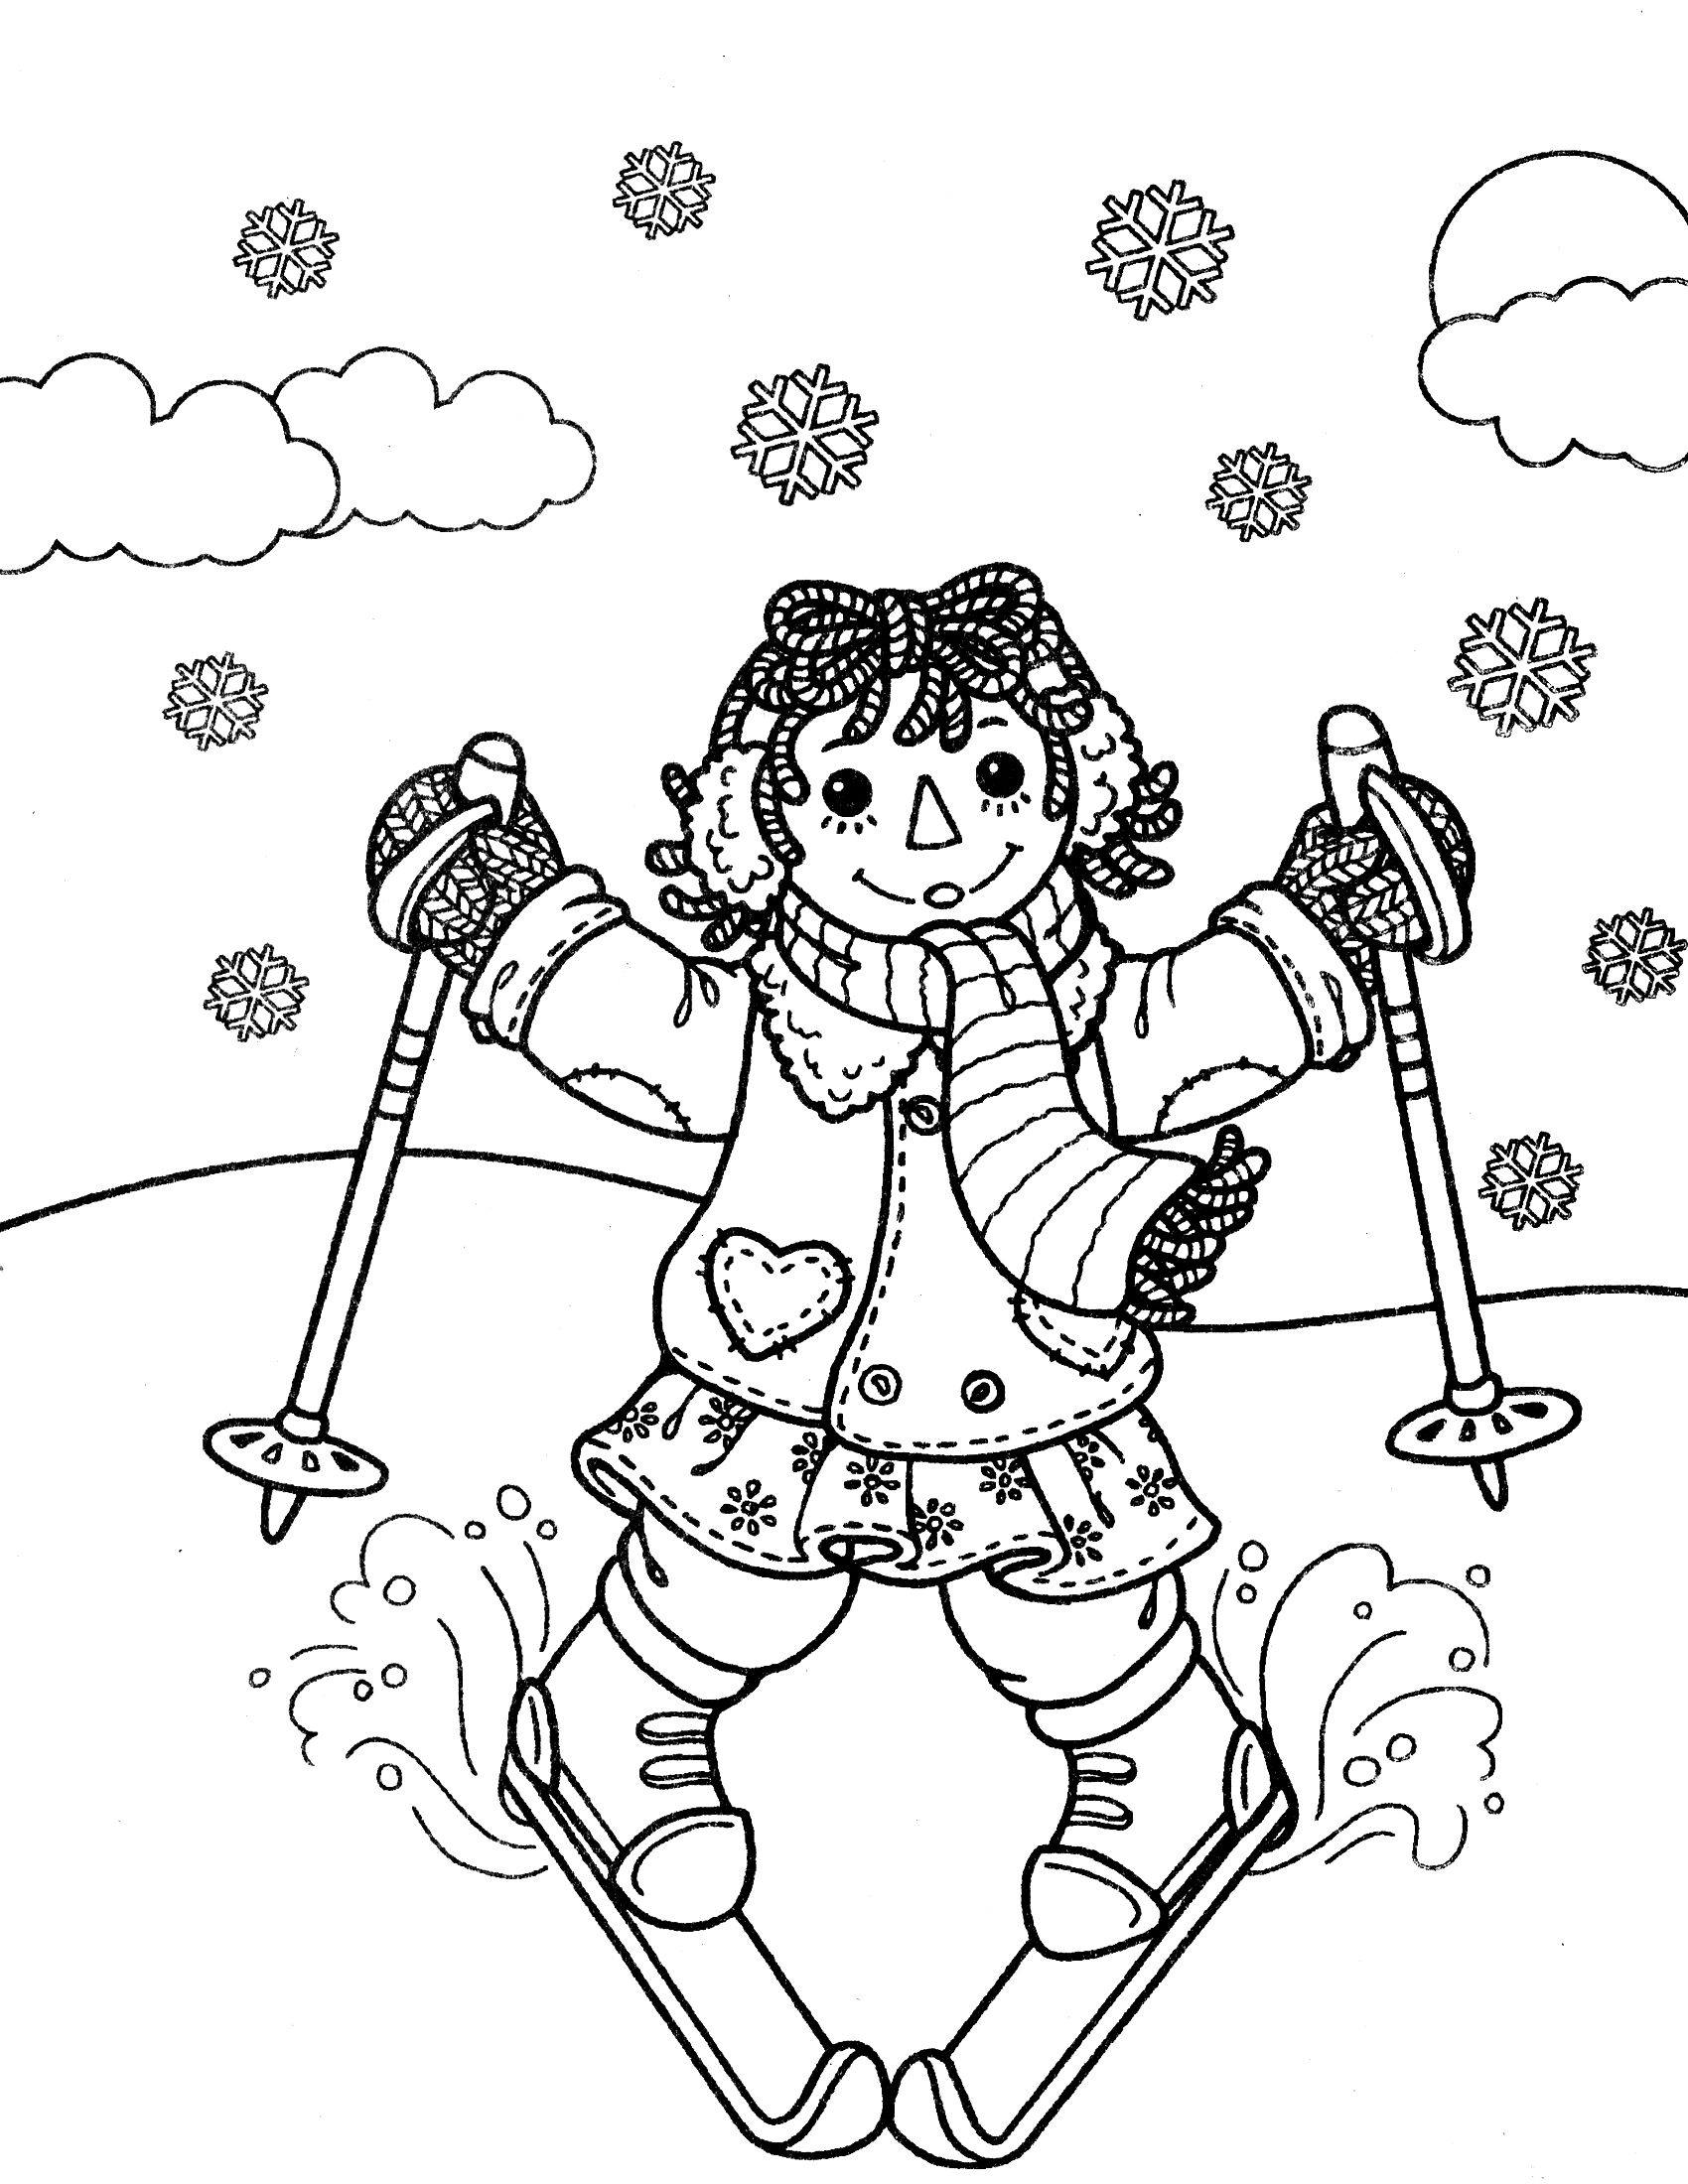 Coloring Pages Raggedy Ann And Andy Coloring Pages 1000 images about coloring pages on pinterest image search and rowing